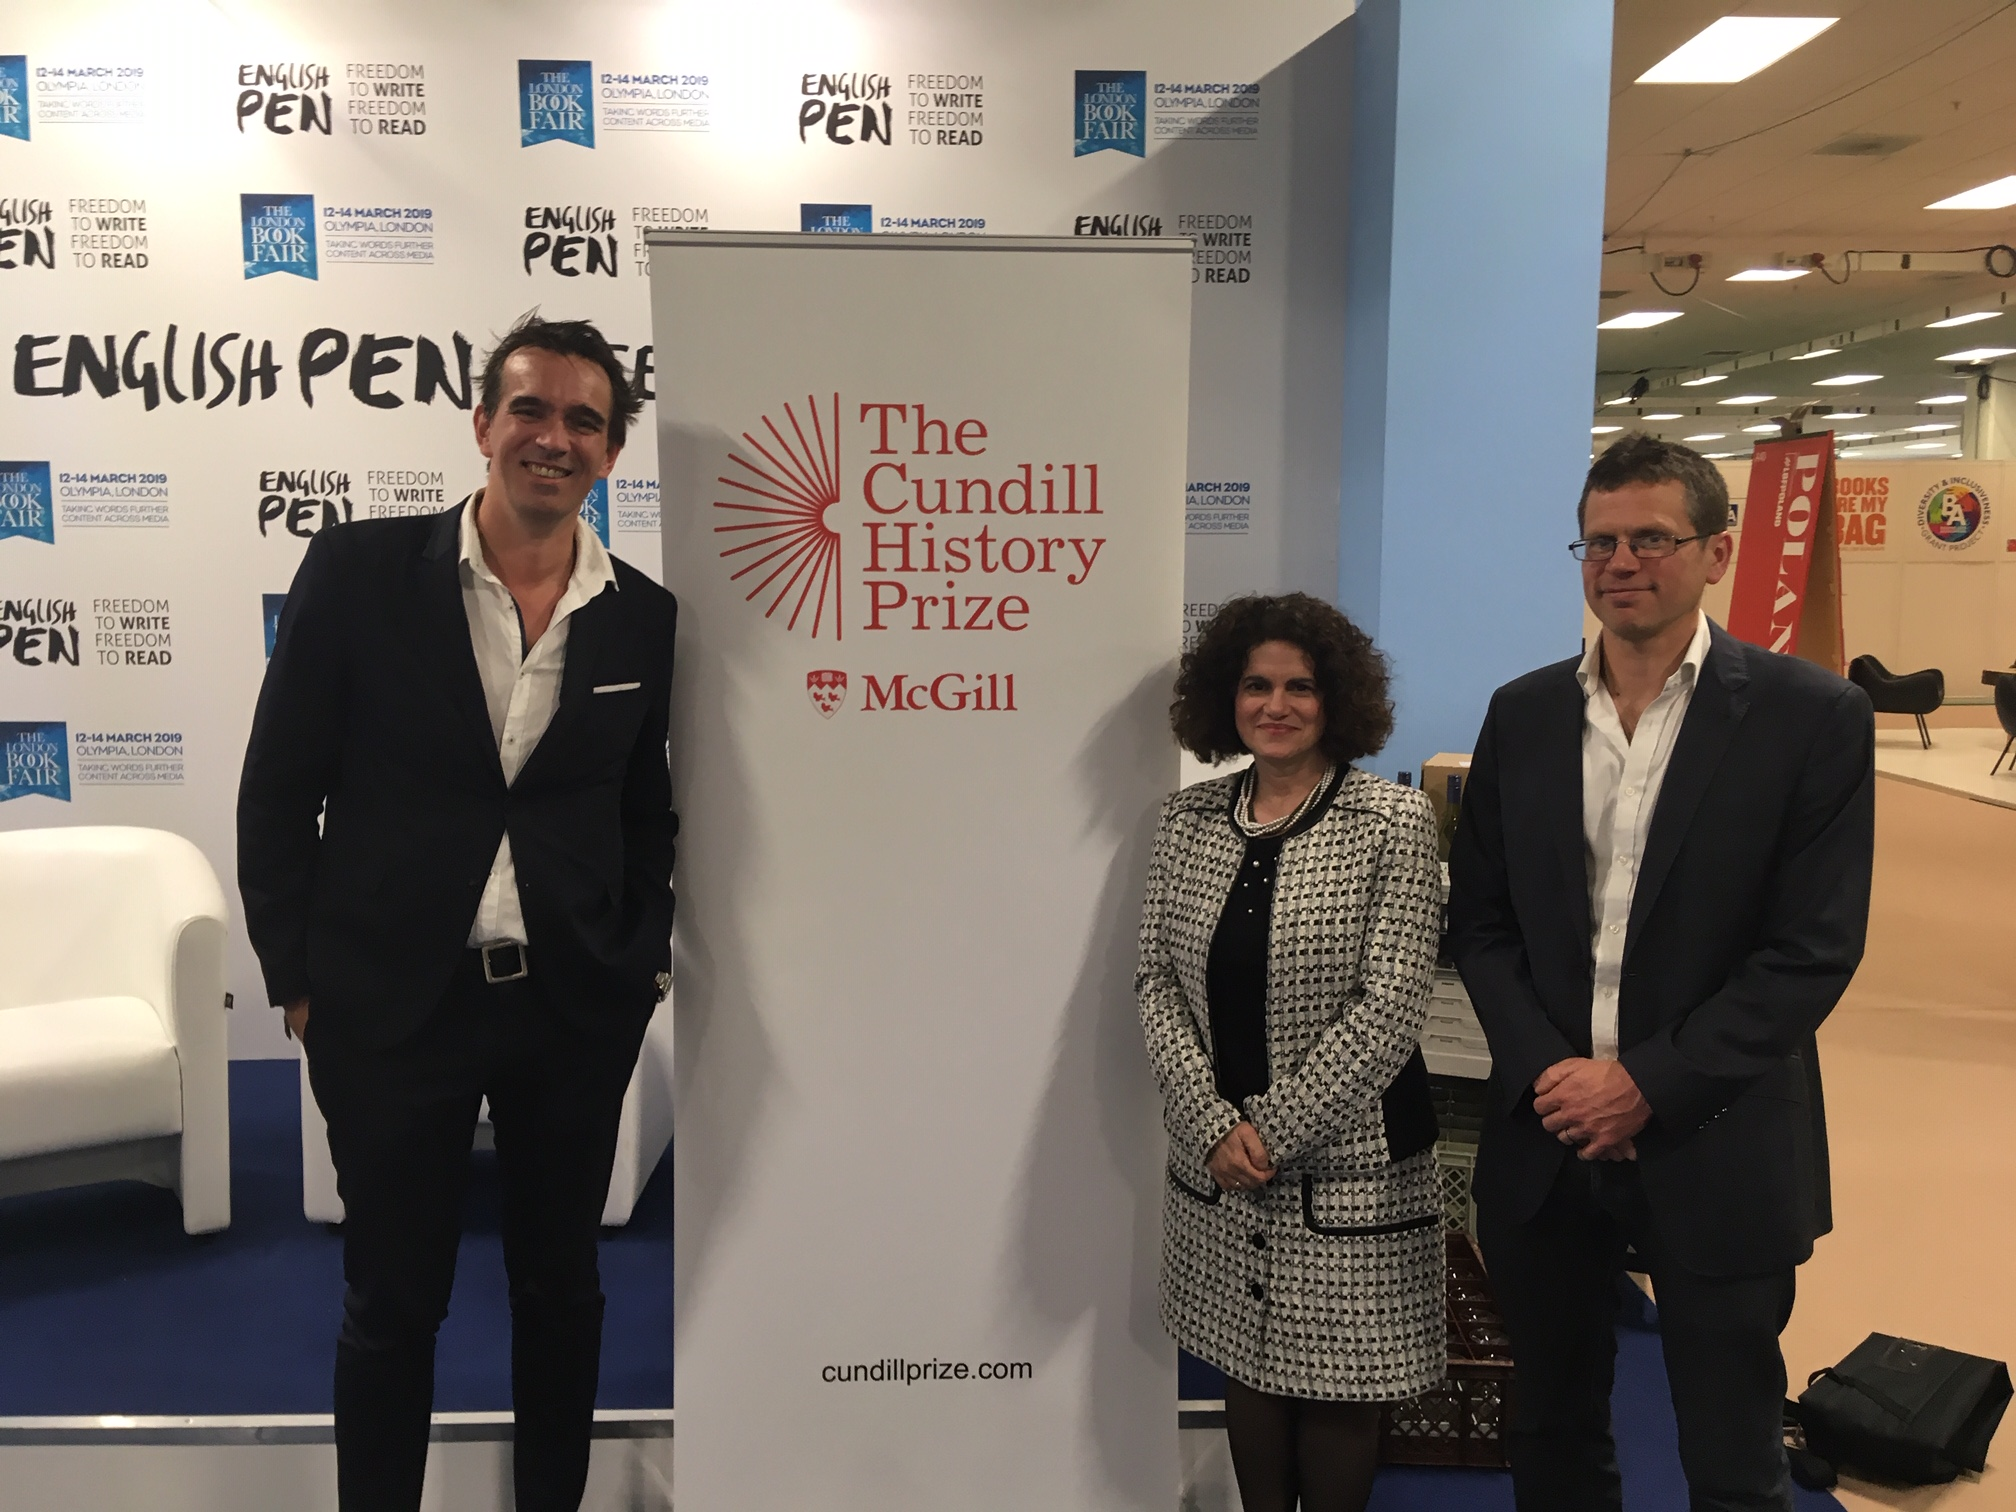 2018 Juror Peter Frankopan; Antonia Maioni, Dean of Arts at McGill University; BBC History Magazine's Dave Musgrove at The London Book Fair, where the 2019 jury was announced